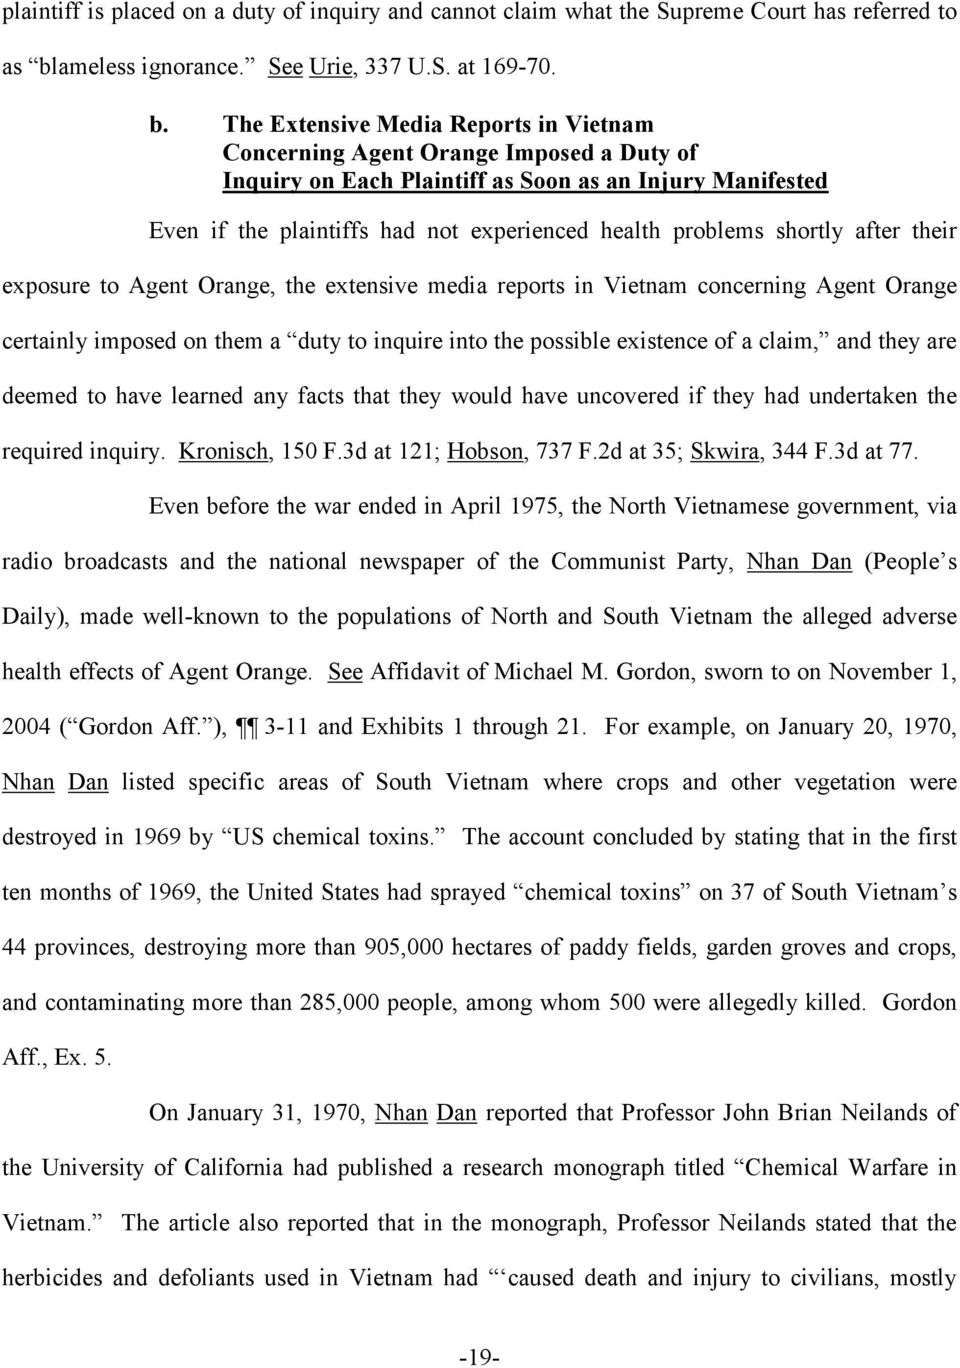 The Extensive Media Reports in Vietnam Concerning Agent Orange Imposed a Duty of Inquiry on Each Plaintiff as Soon as an Injury Manifested Even if the plaintiffs had not experienced health problems